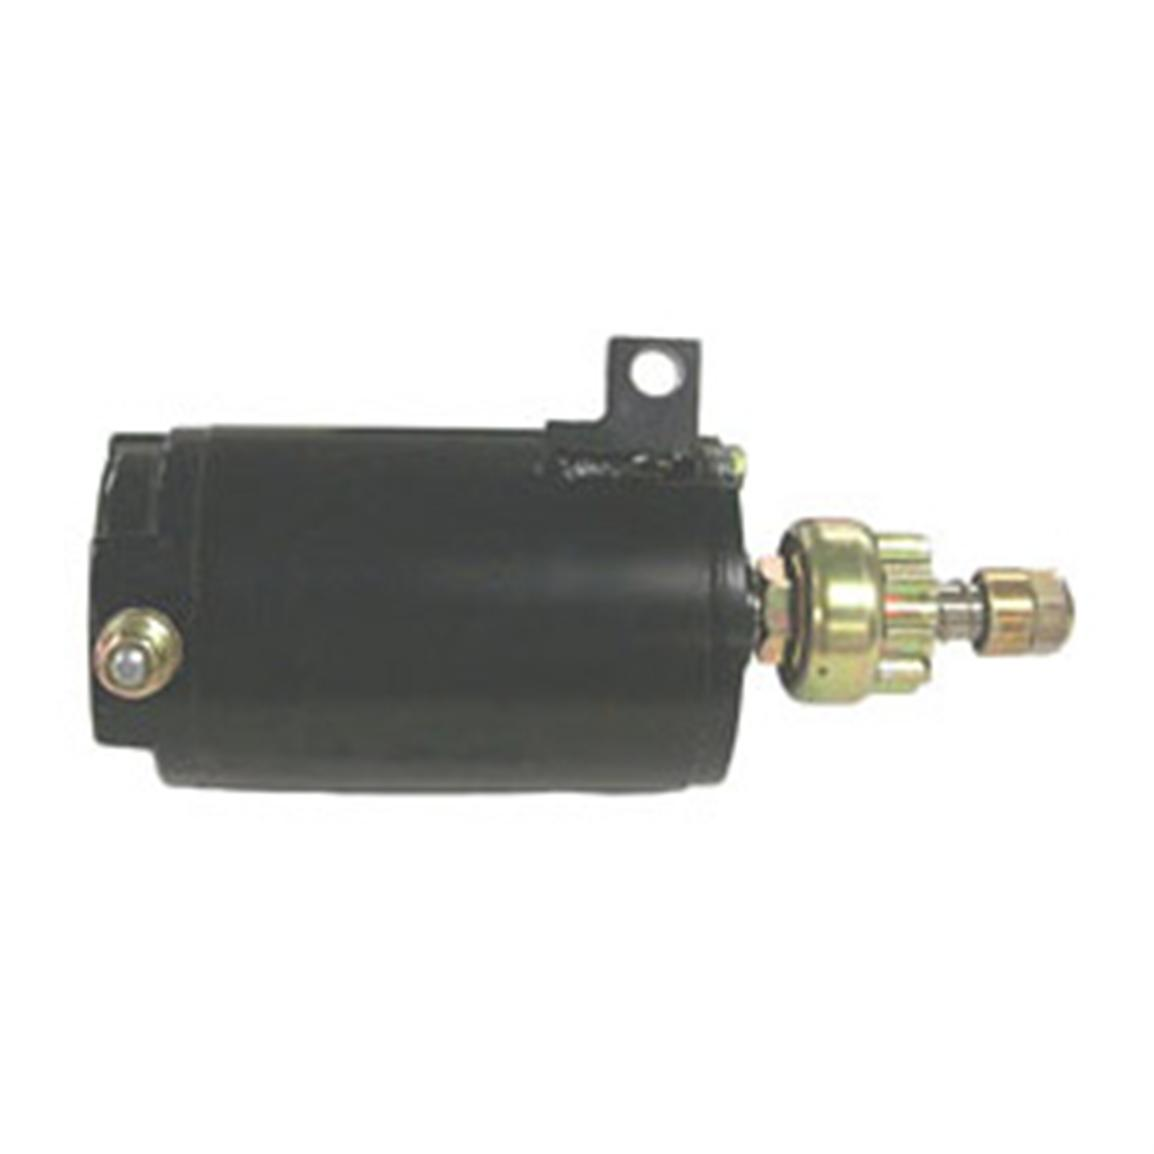 Sierra Marine® Outboard Starter Replaces 387684, 585063, 389275, 384163